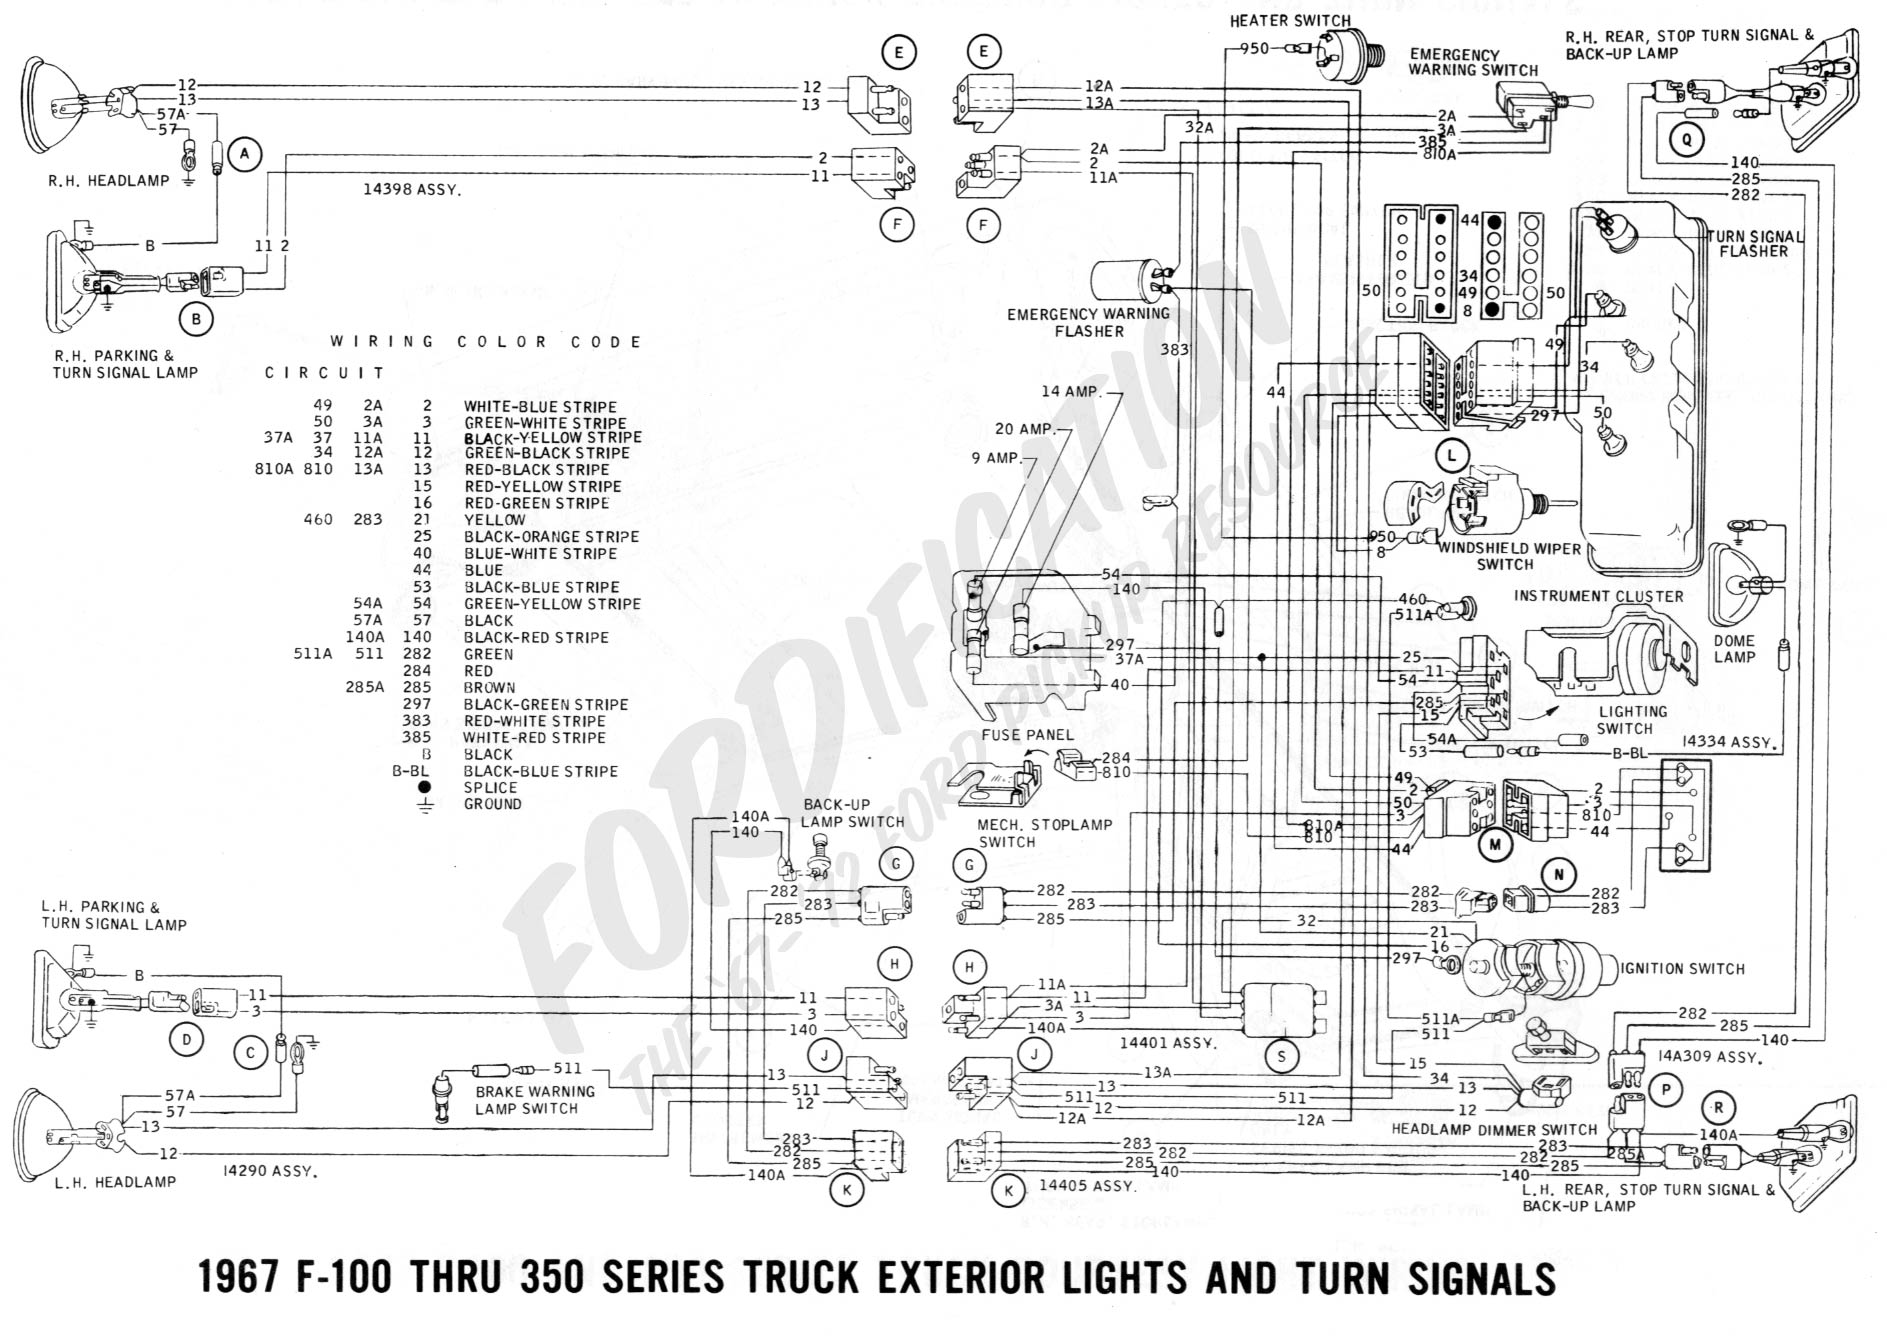 1999 Ford F 150 Ignition Fuse Diagram Reinvent Your Wiring Box 02 Headlight Diagrams Detailed Schematics Rh Highcliffemedicalcentre Com 97 Panel